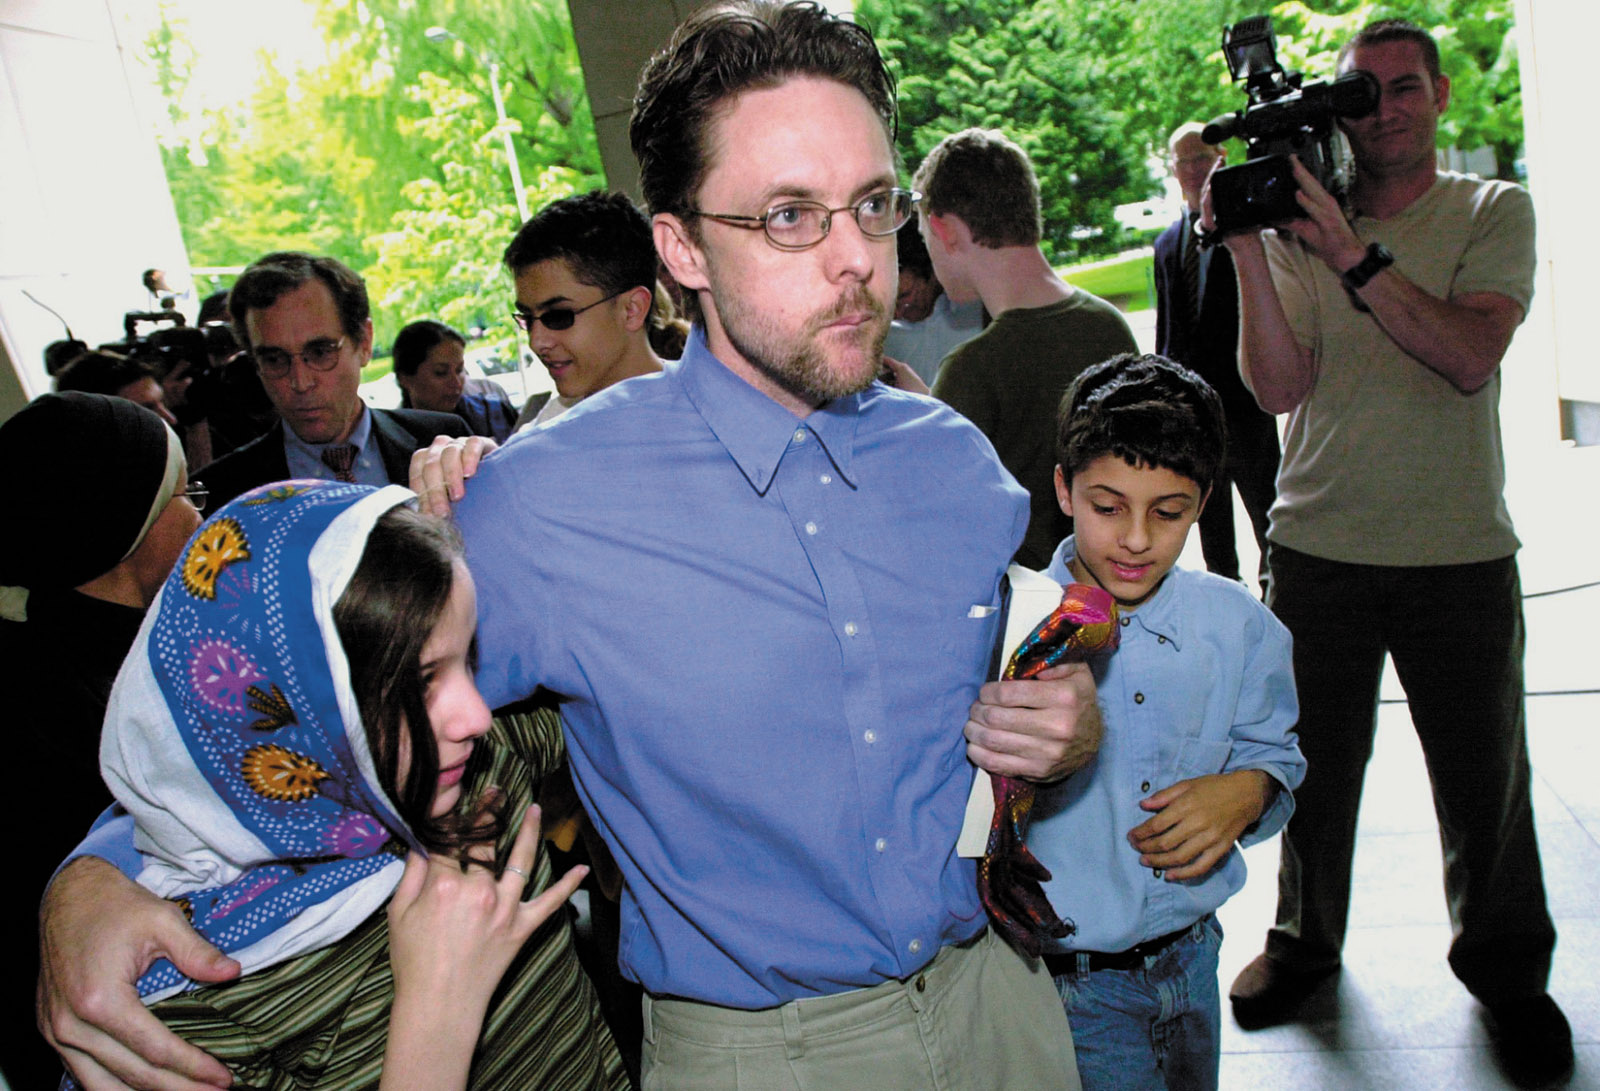 Brandon Mayfield and his children outside a federal courthouse after his release from custody, Portland, Oregon, May 2004.